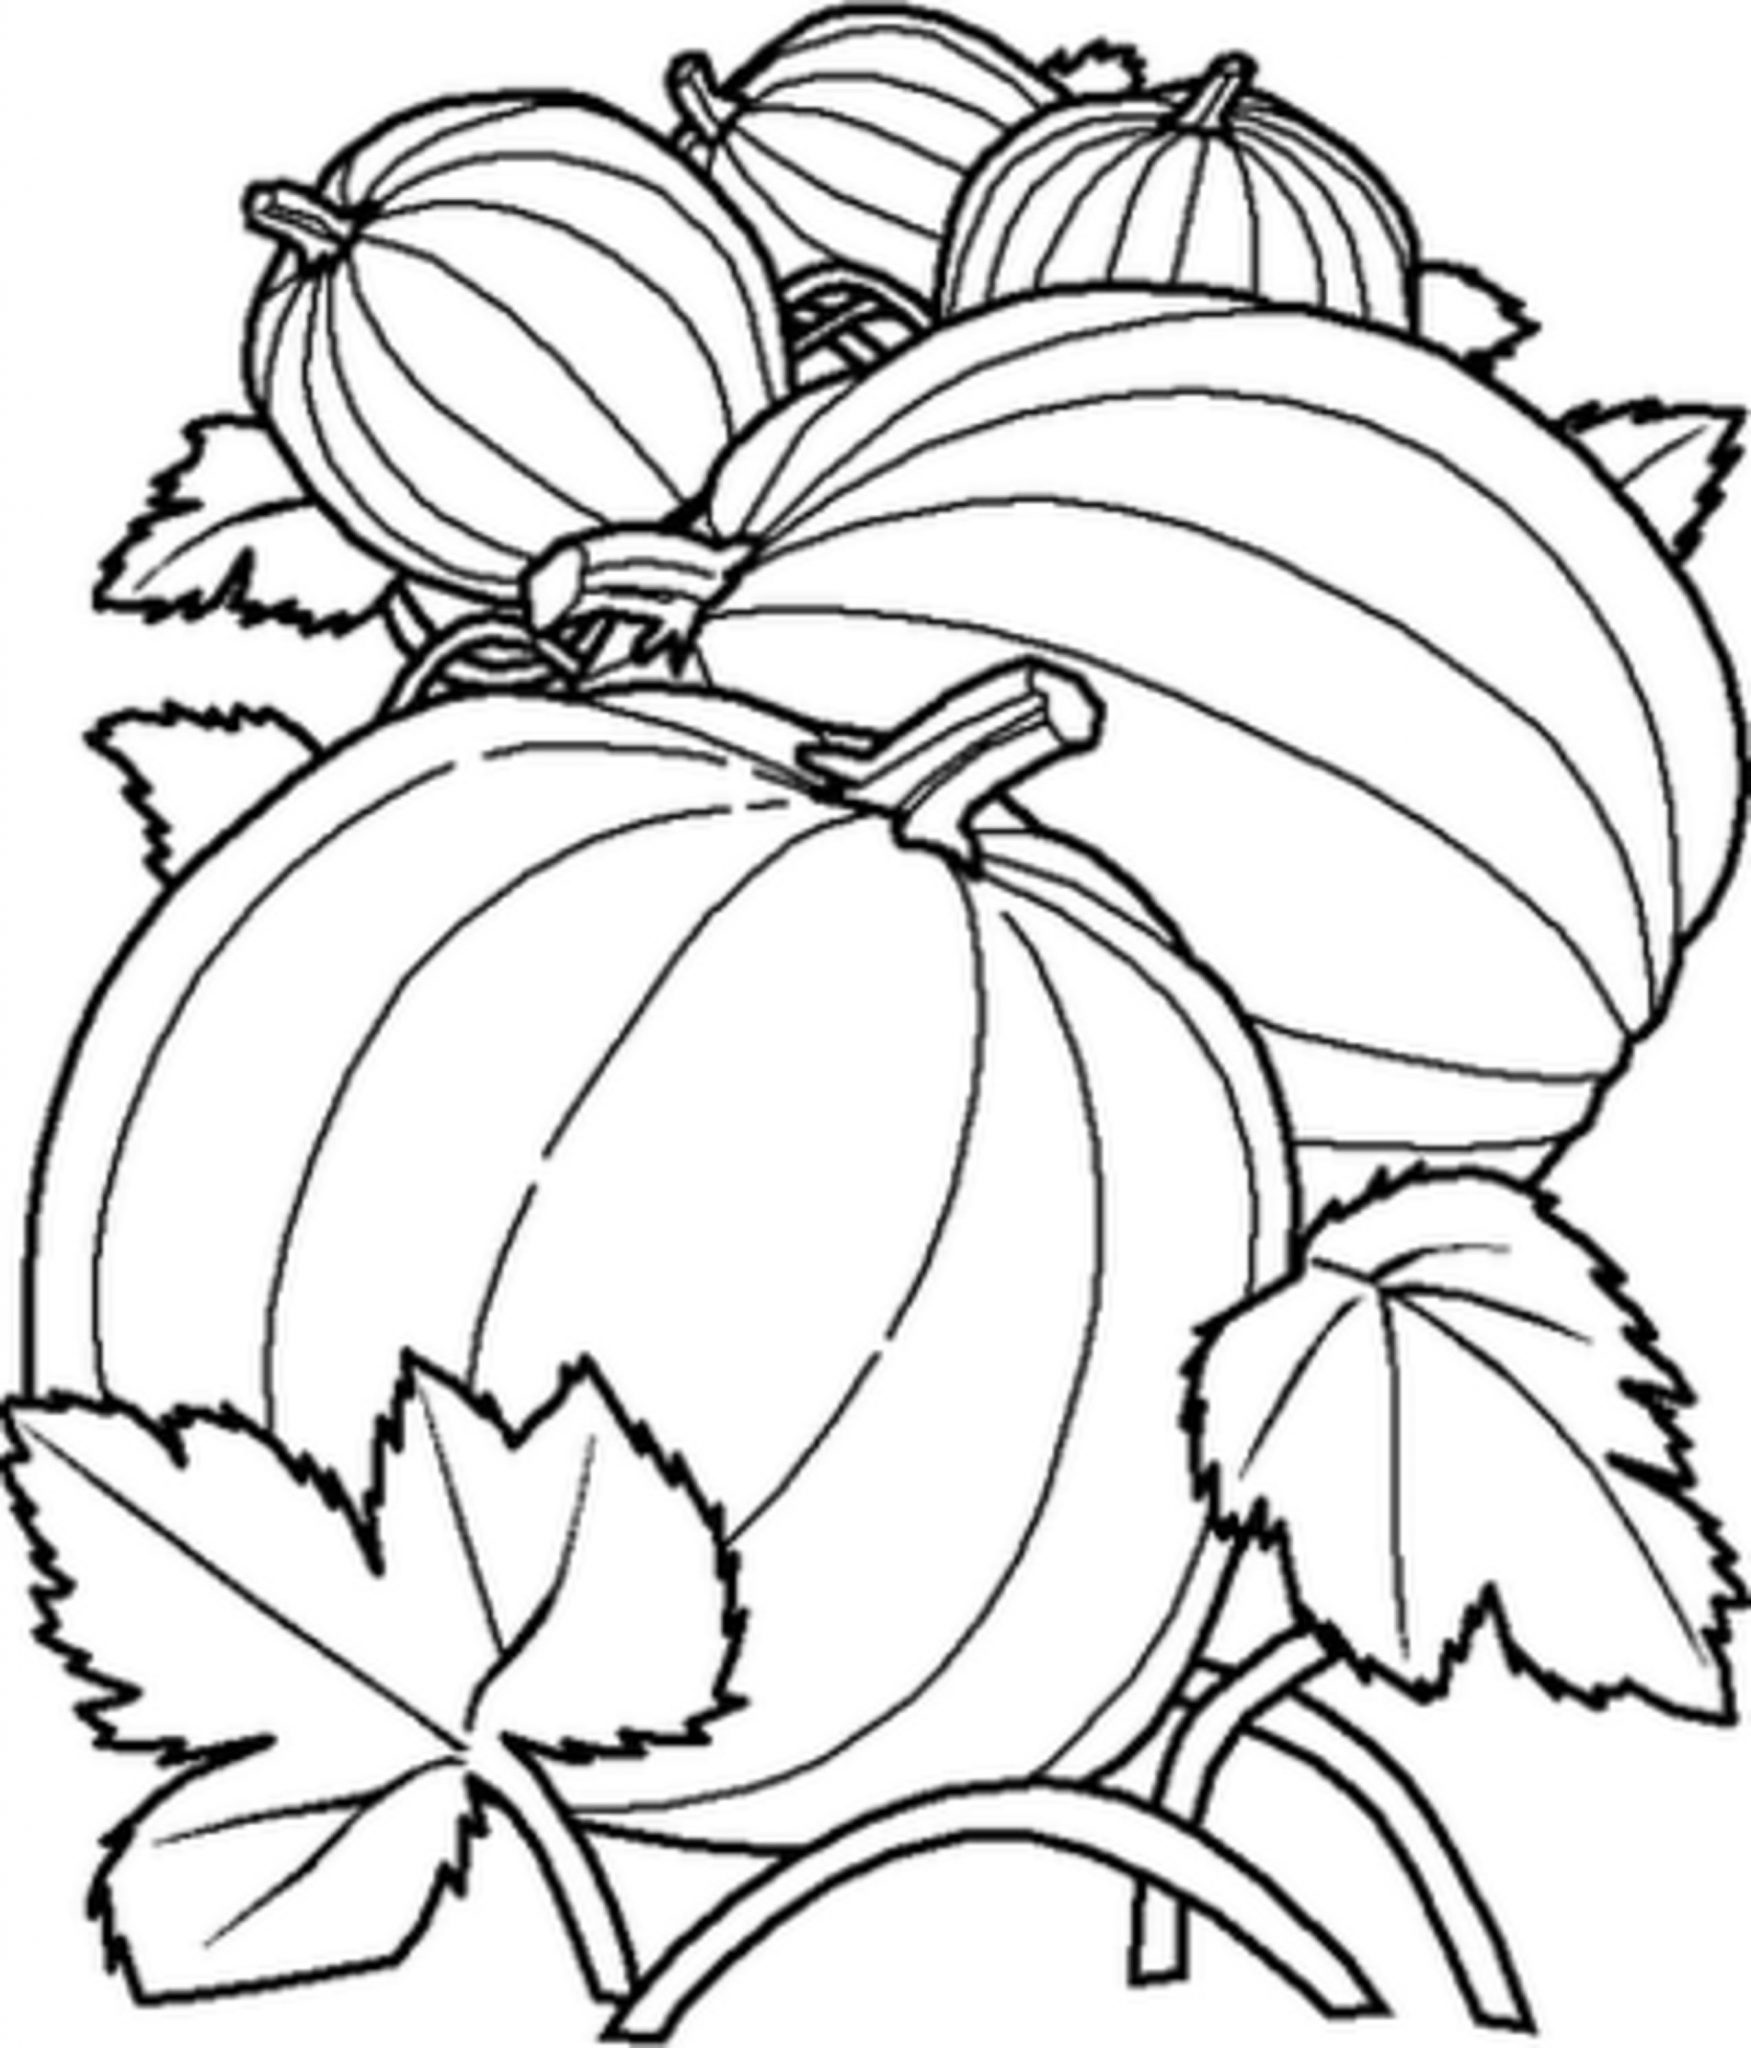 color a pumpkin print download pumpkin coloring pages and benefits of a pumpkin color